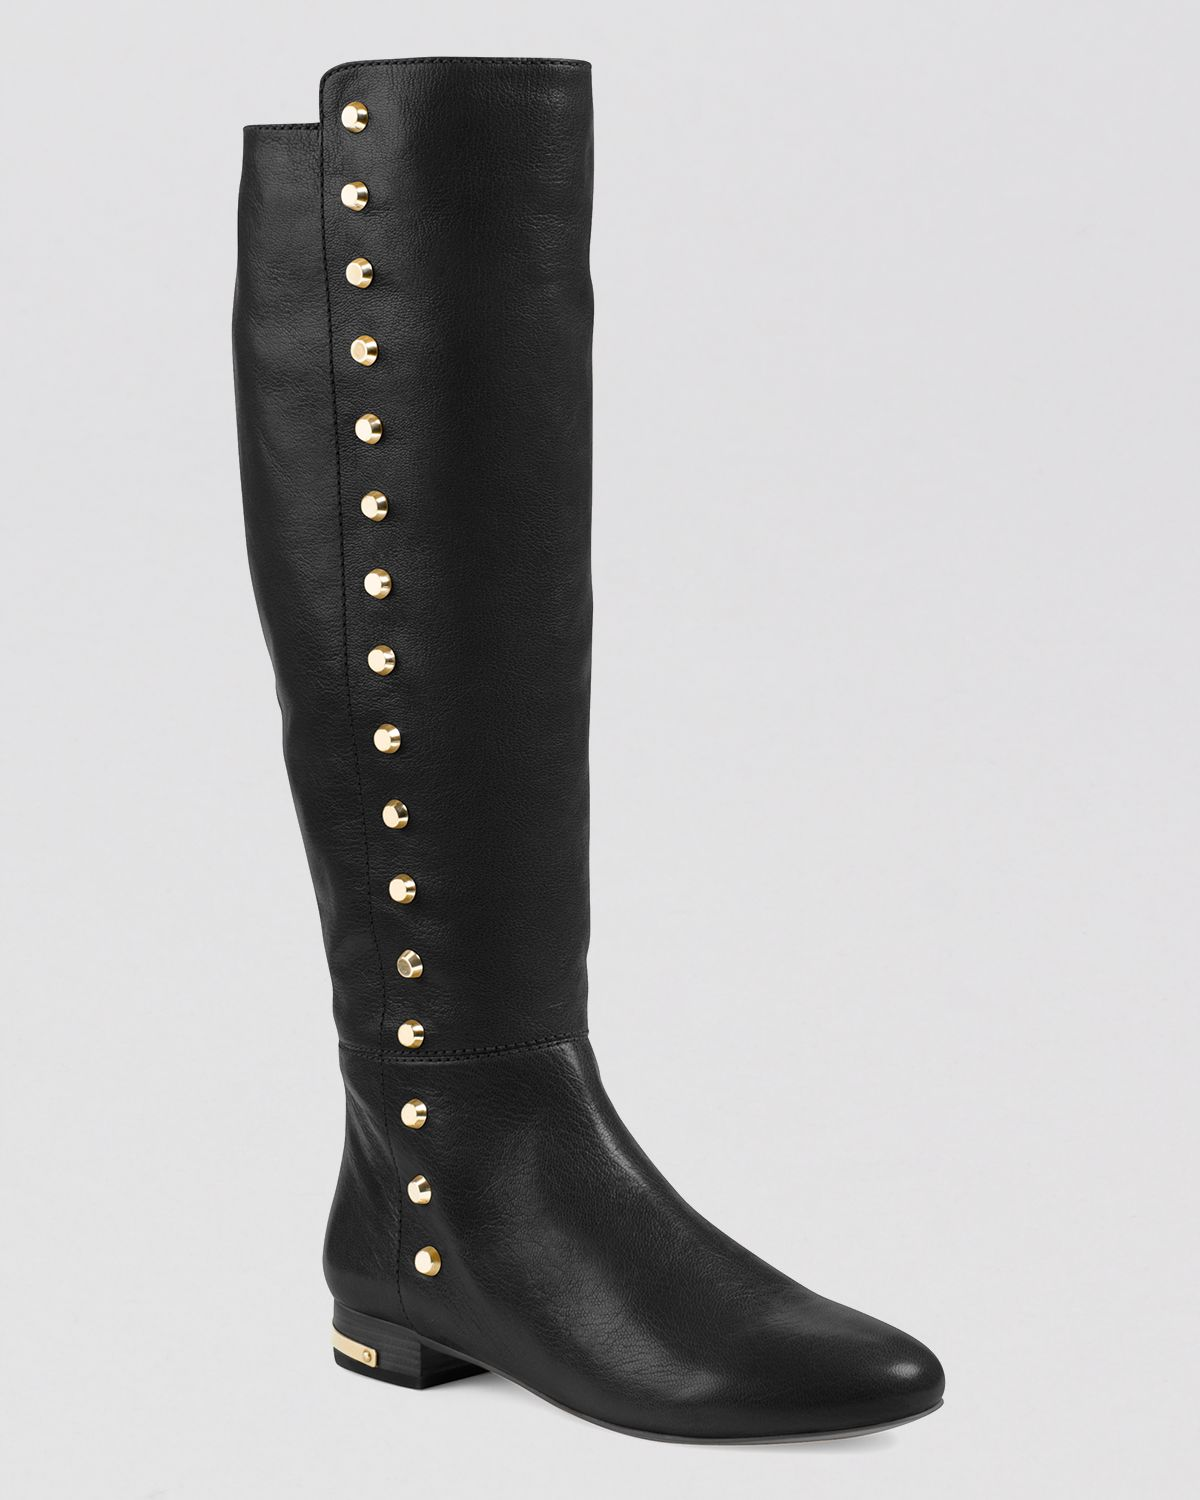 MICHAEL Michael Kors Flat Tall Boots - Ailee Studded | Bloomingdale's